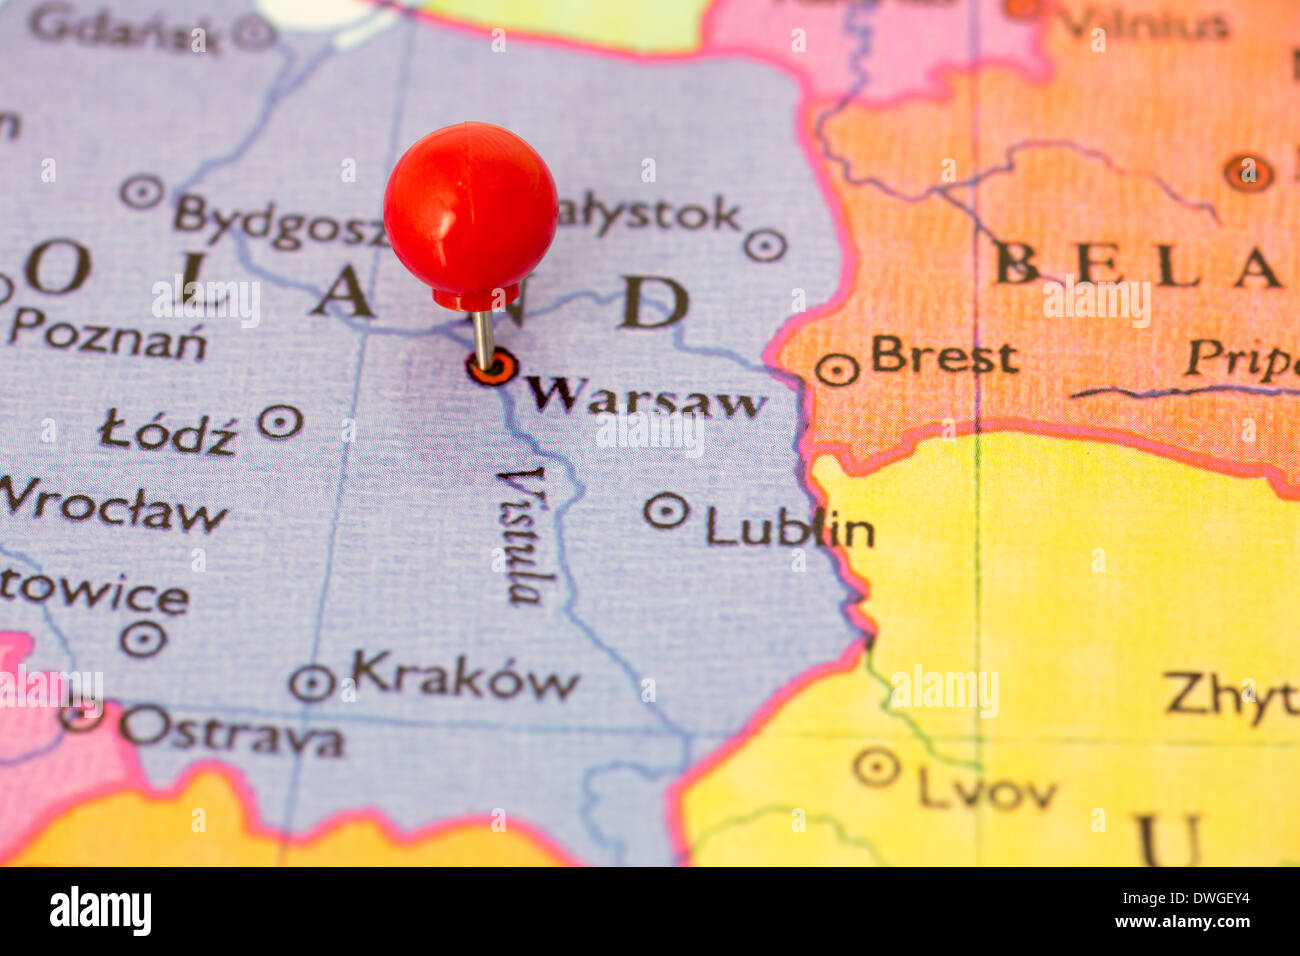 round red thumb tack pinched through city of warsaw on poland map